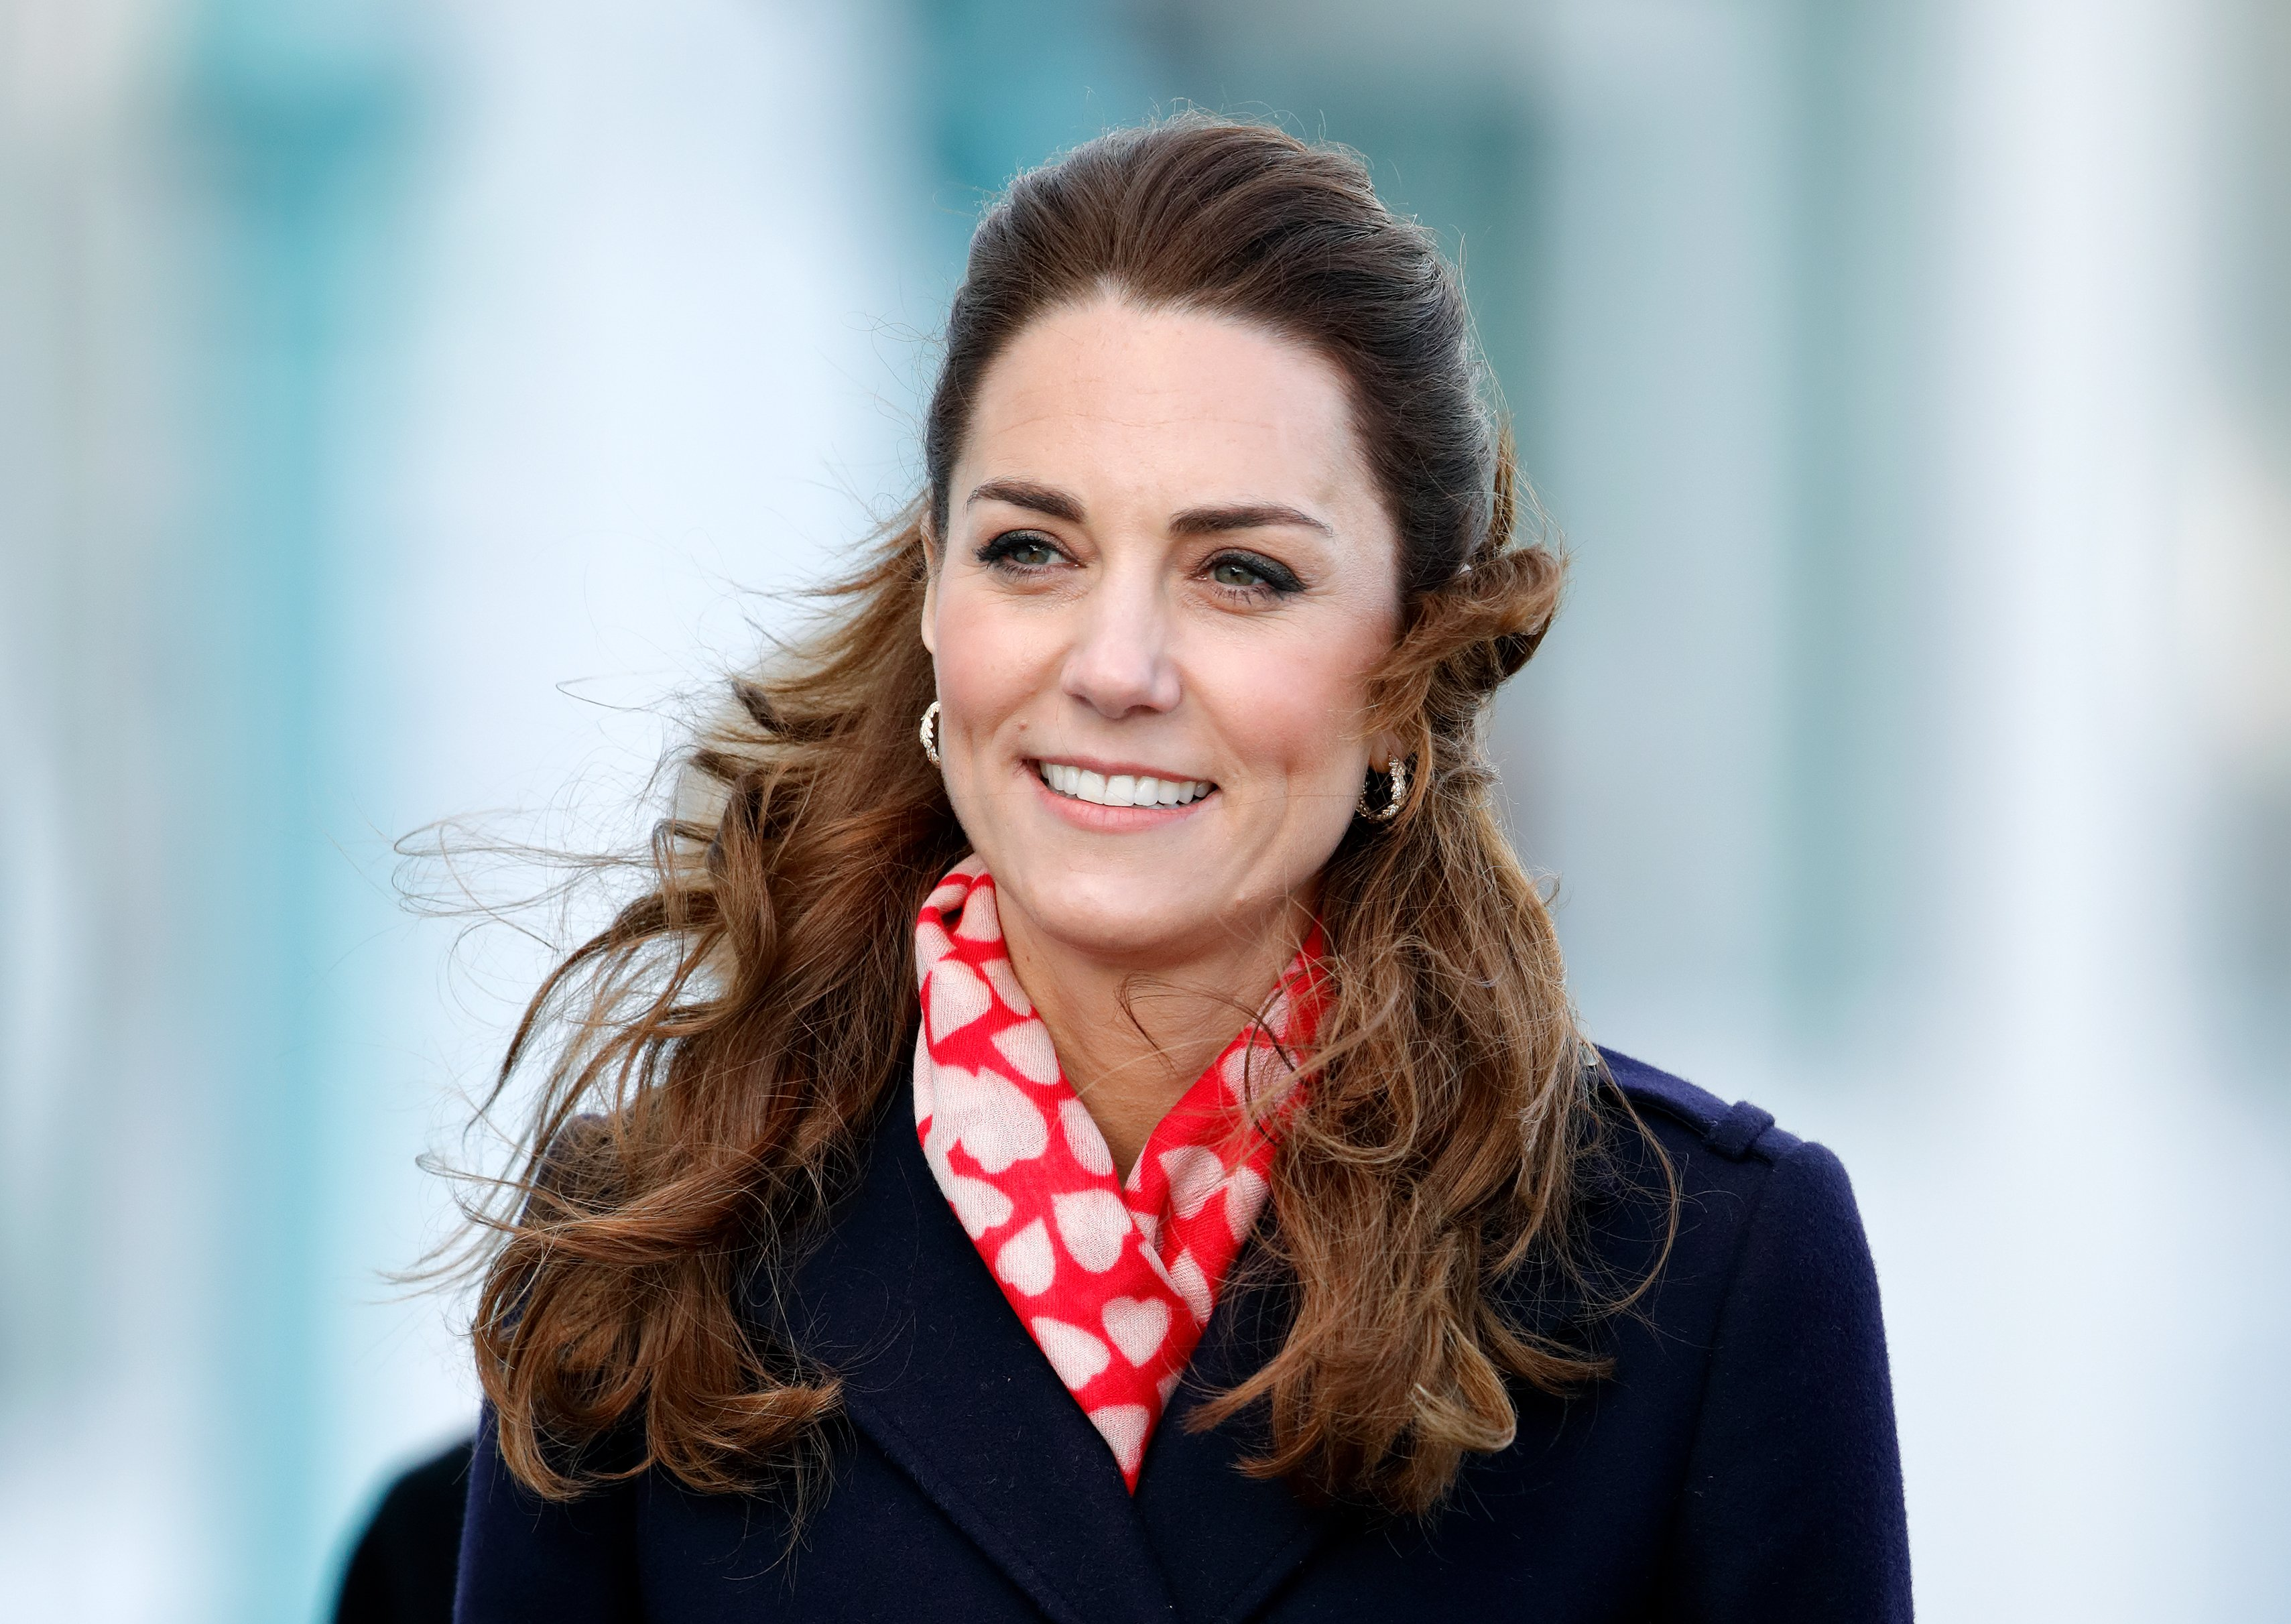 Kate Middleton visits the Royal National Lifeboat Institution (RNLI) Mumbles Lifeboat station on February 4, 2020, in Swansea, Wales. | Source: Getty Images.